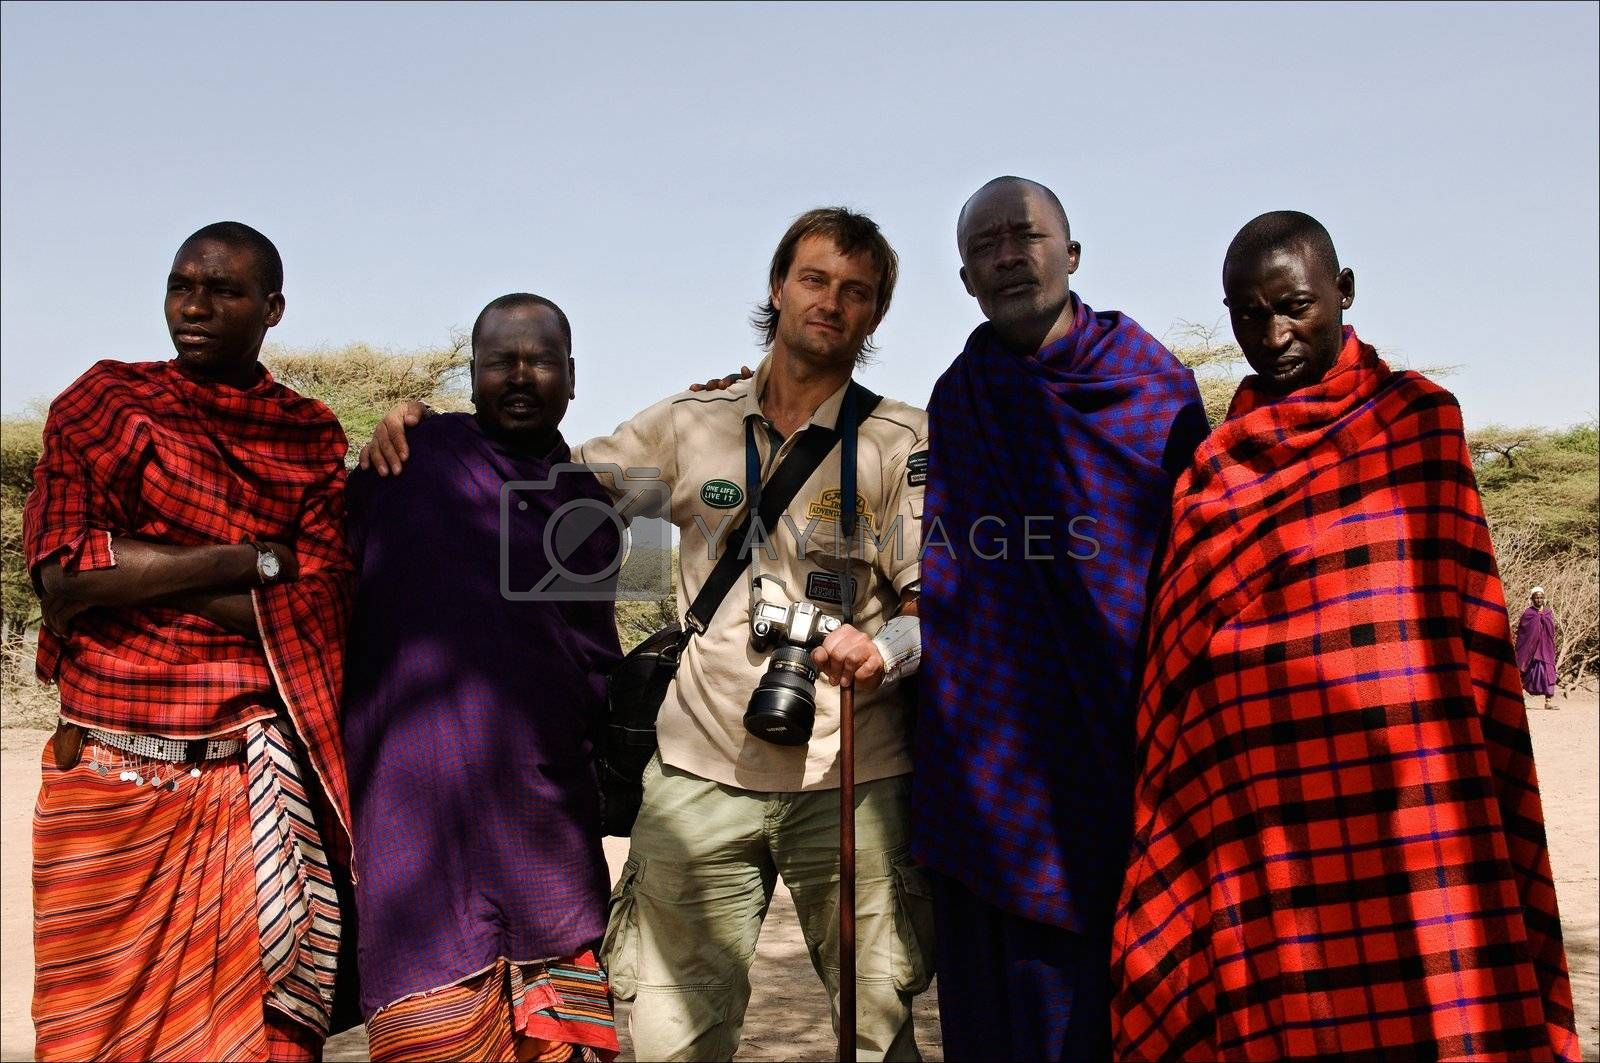 The Maasai (also Masai) are a Nilotic ethnic group of semi-nomadic people located in Kenya and northern Tanzania.